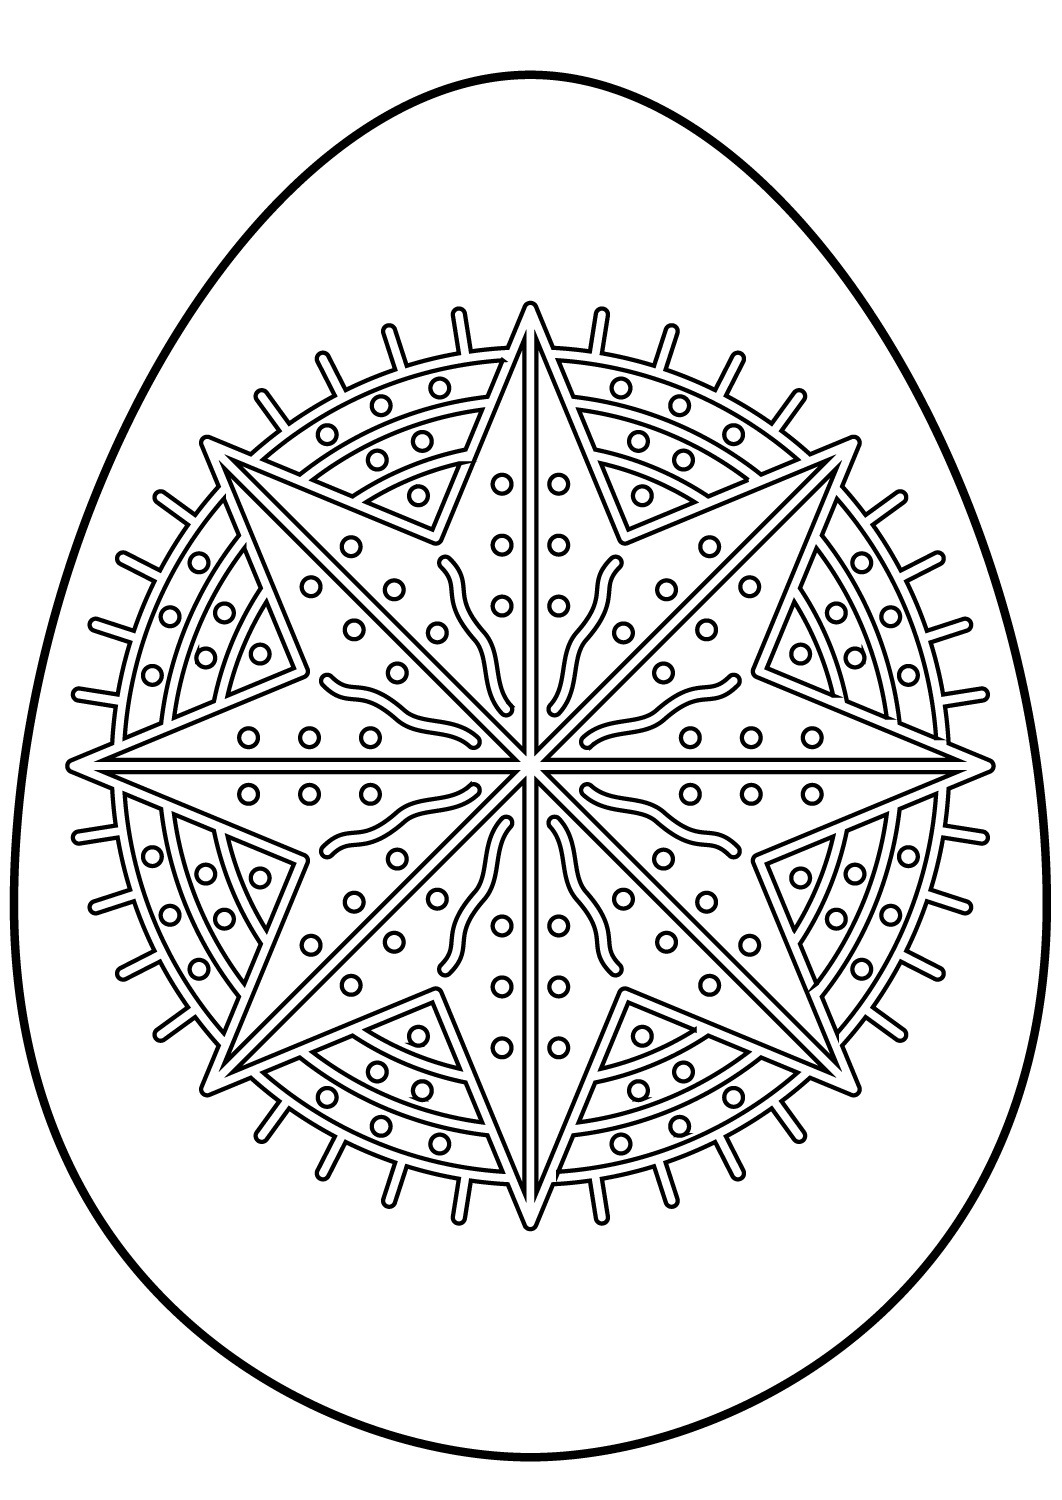 Easter Egg with Octagram Star Pattern